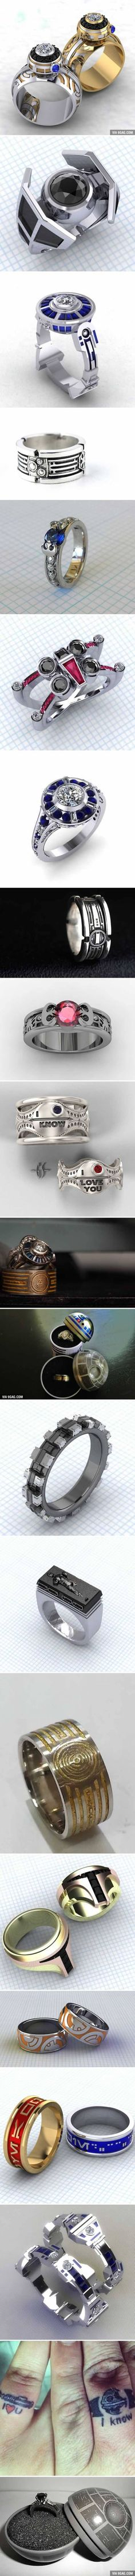 21 Most Romantic Star Wars Wedding Rings The BB-8 wedding rings are incredible. My Girlfriend should be worried. #starwars